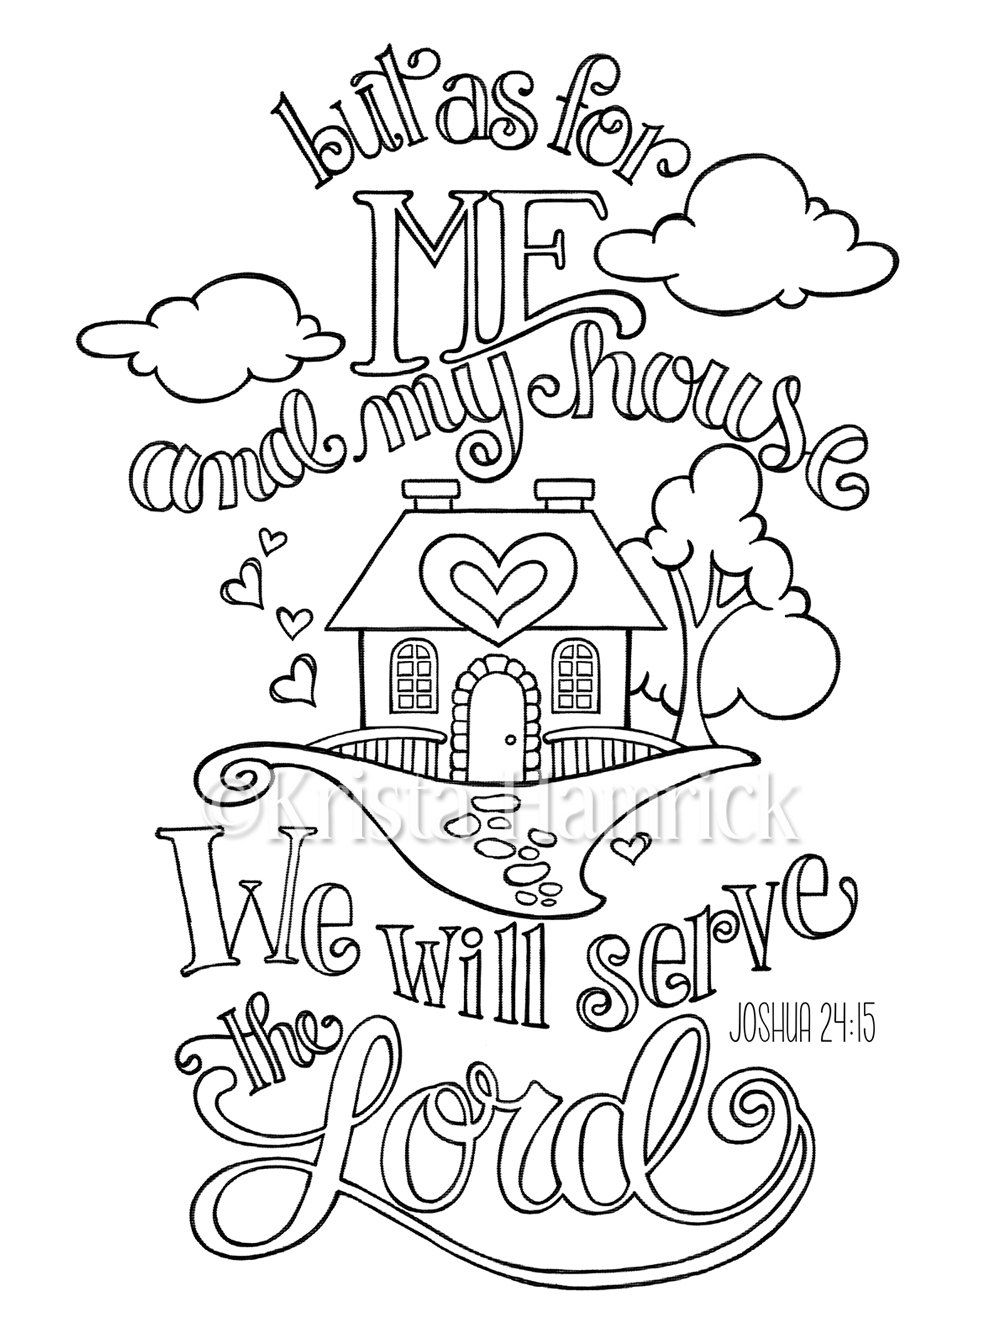 As For Me and My House coloring page / Two sizes included